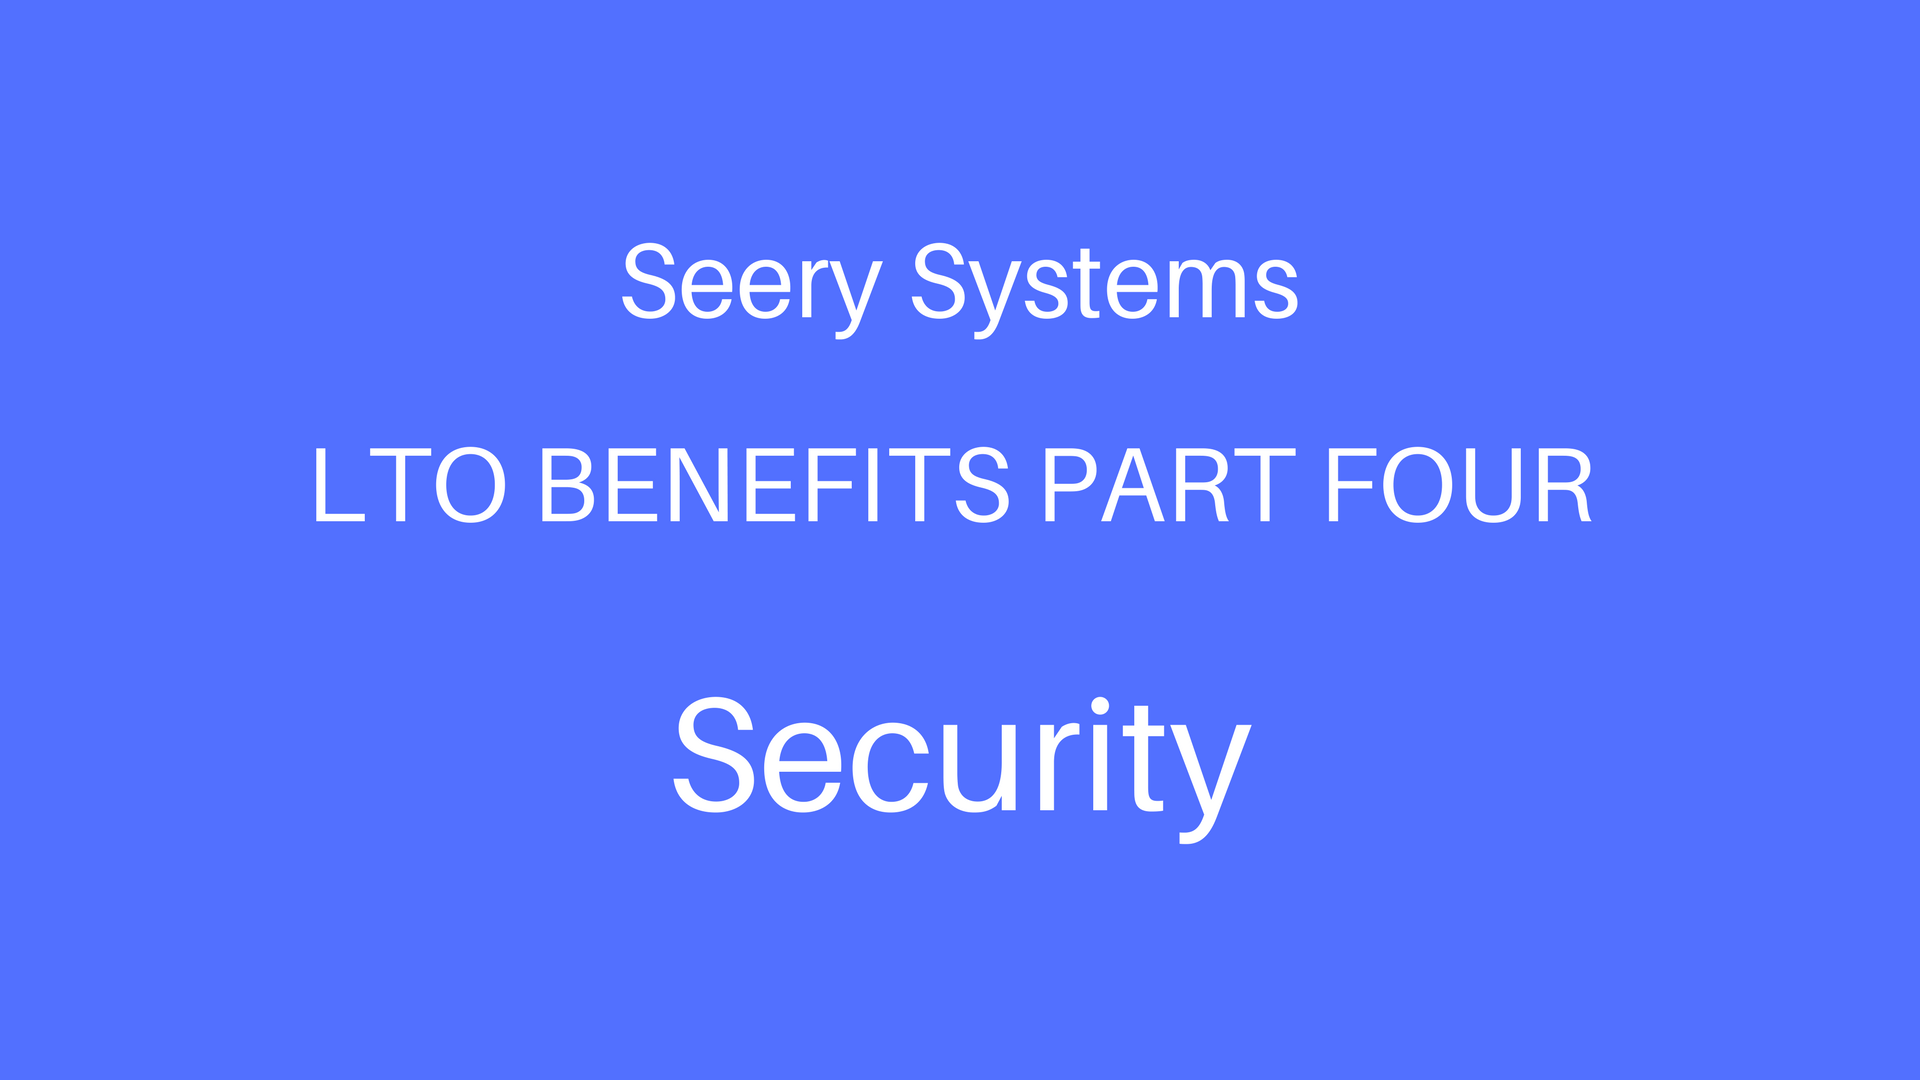 LTO Benefits Part 4 - Security